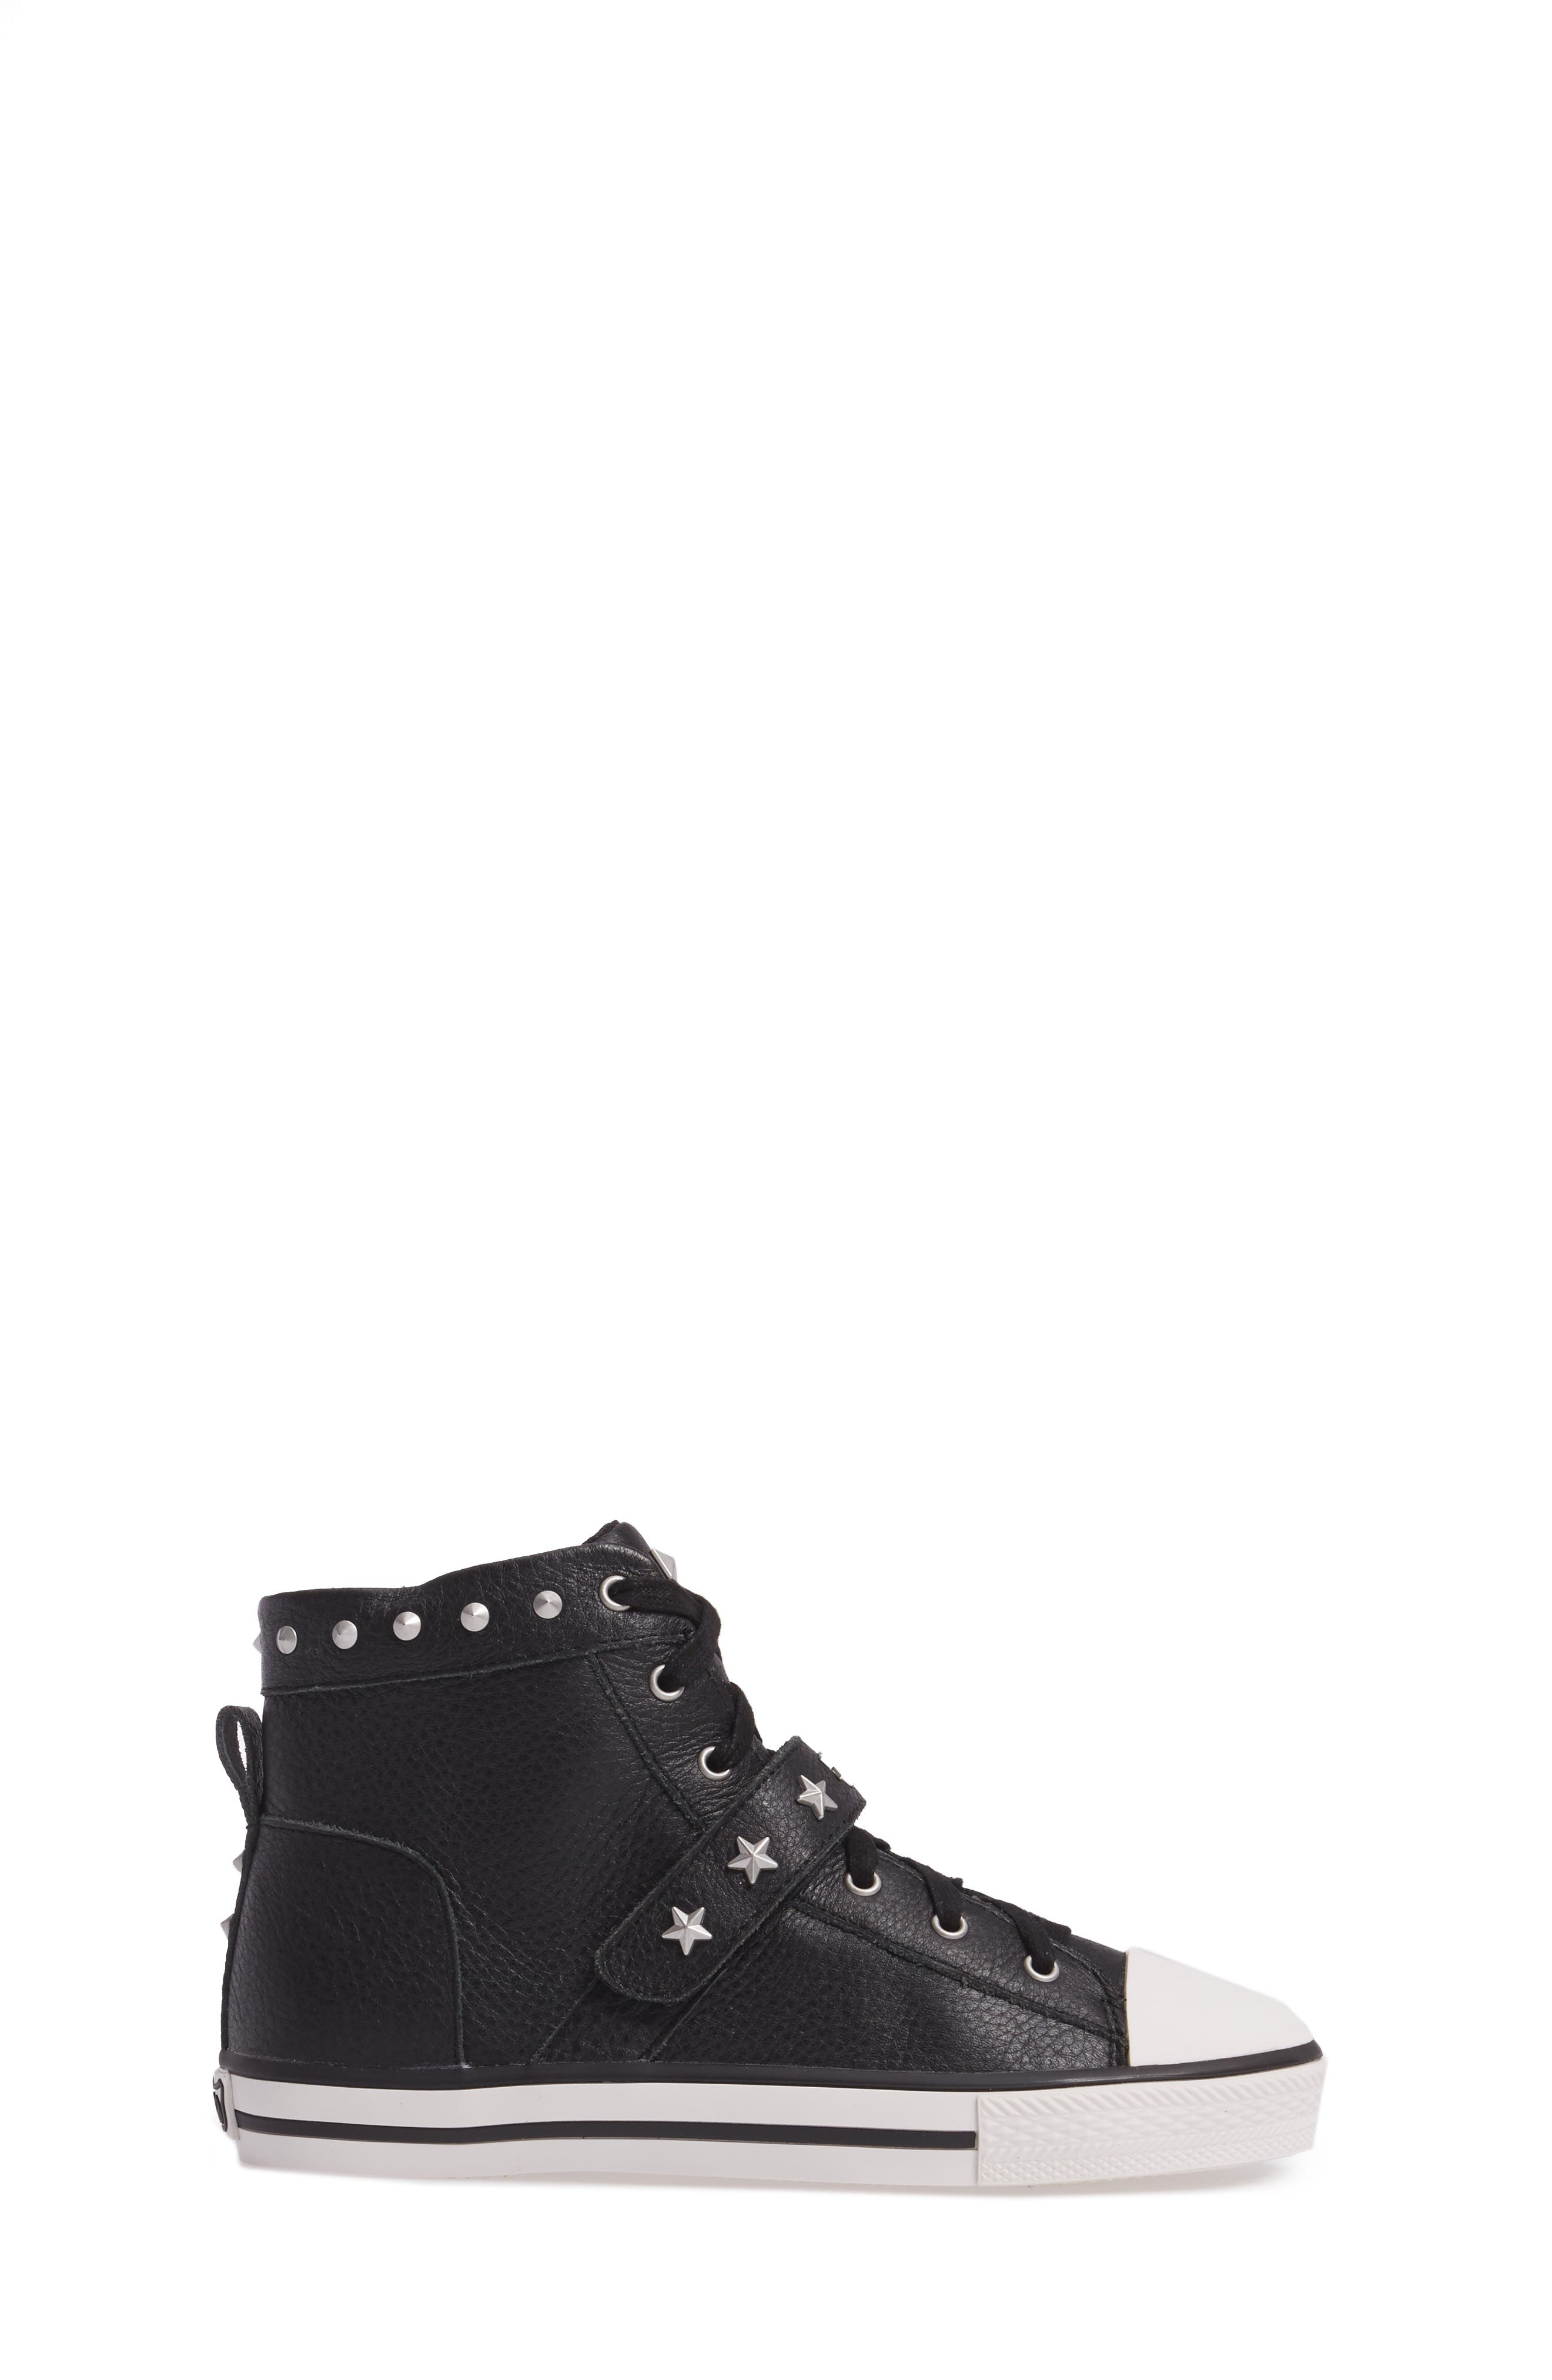 Vava Curve Studded High Top Sneaker,                             Alternate thumbnail 3, color,                             Black Leather